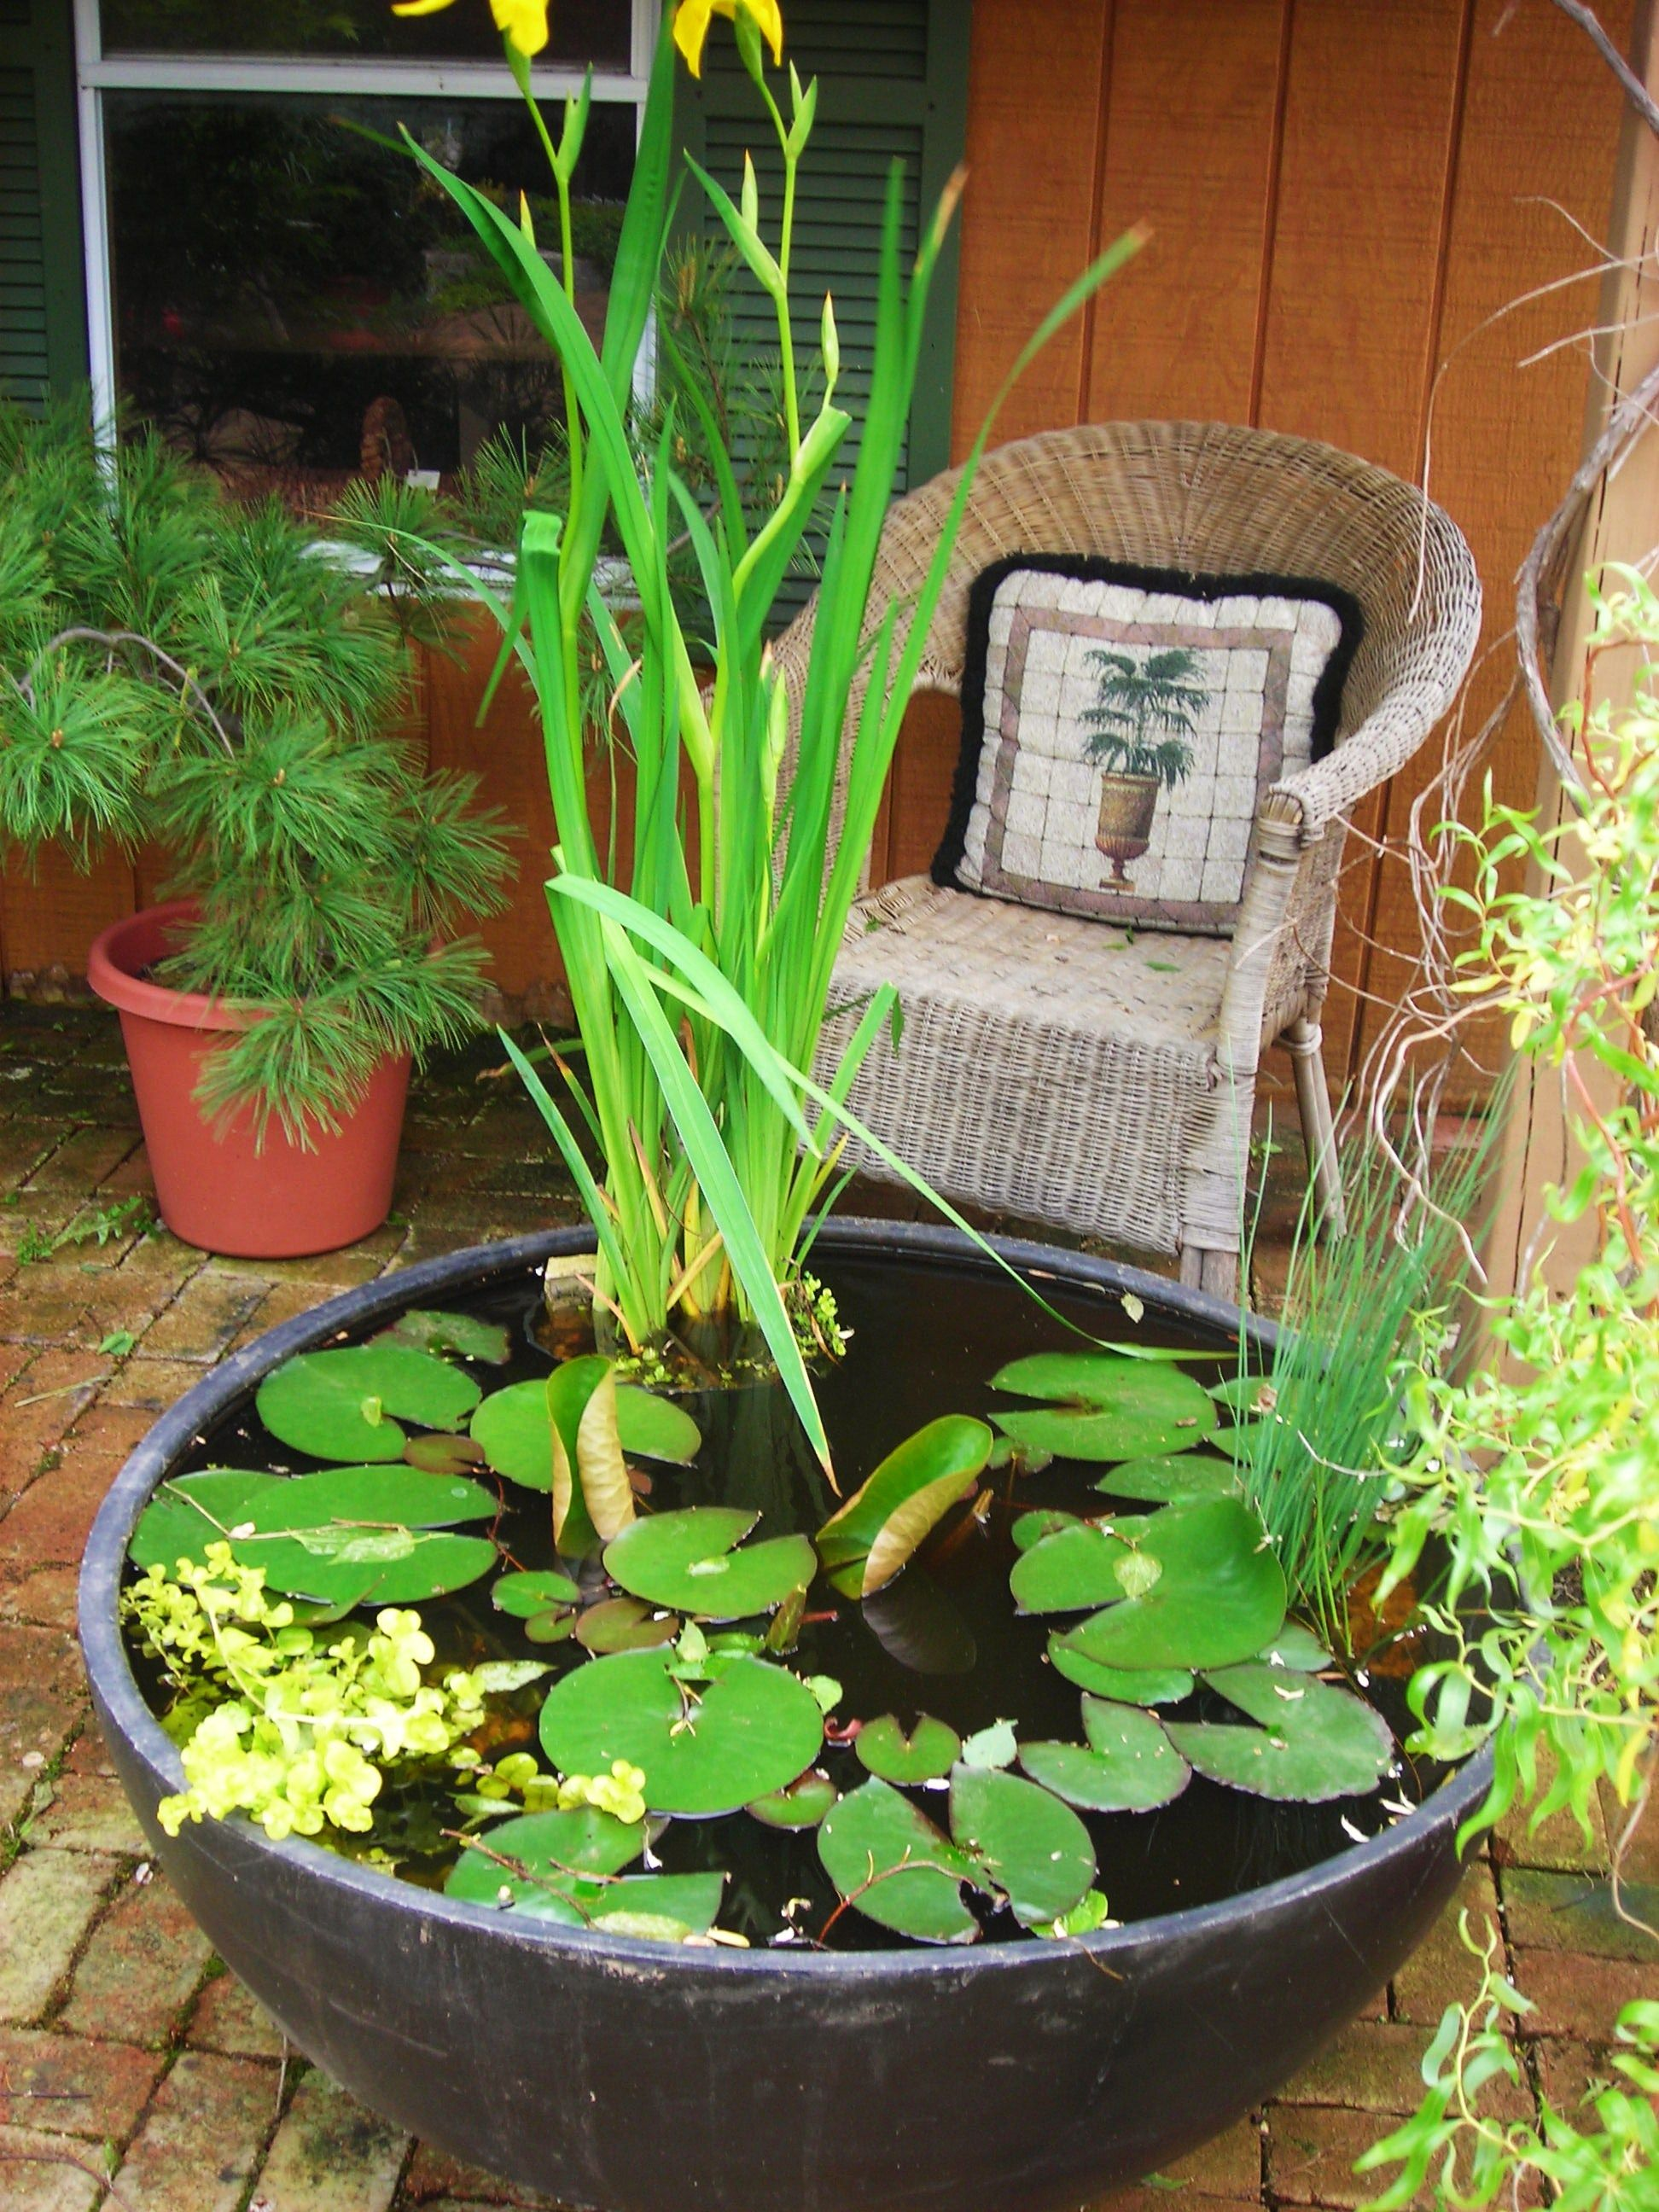 Water Gardens: We Made This Water Garden In A Large Plastic Pot